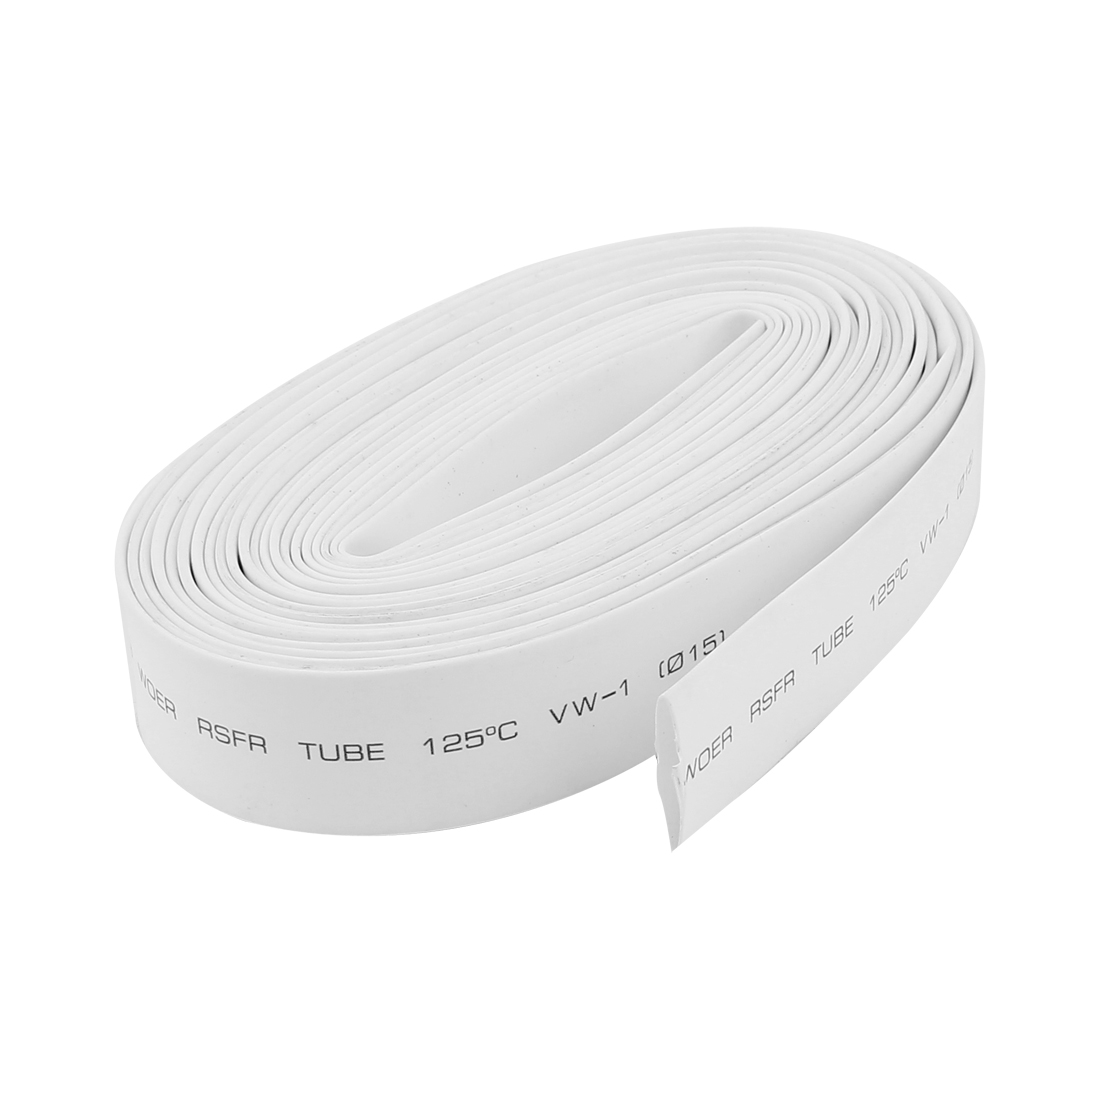 15mm Dia. Heat Shrink Wire Wrap Tubing Shrinkable Cable Sleeve White 5.6m Long